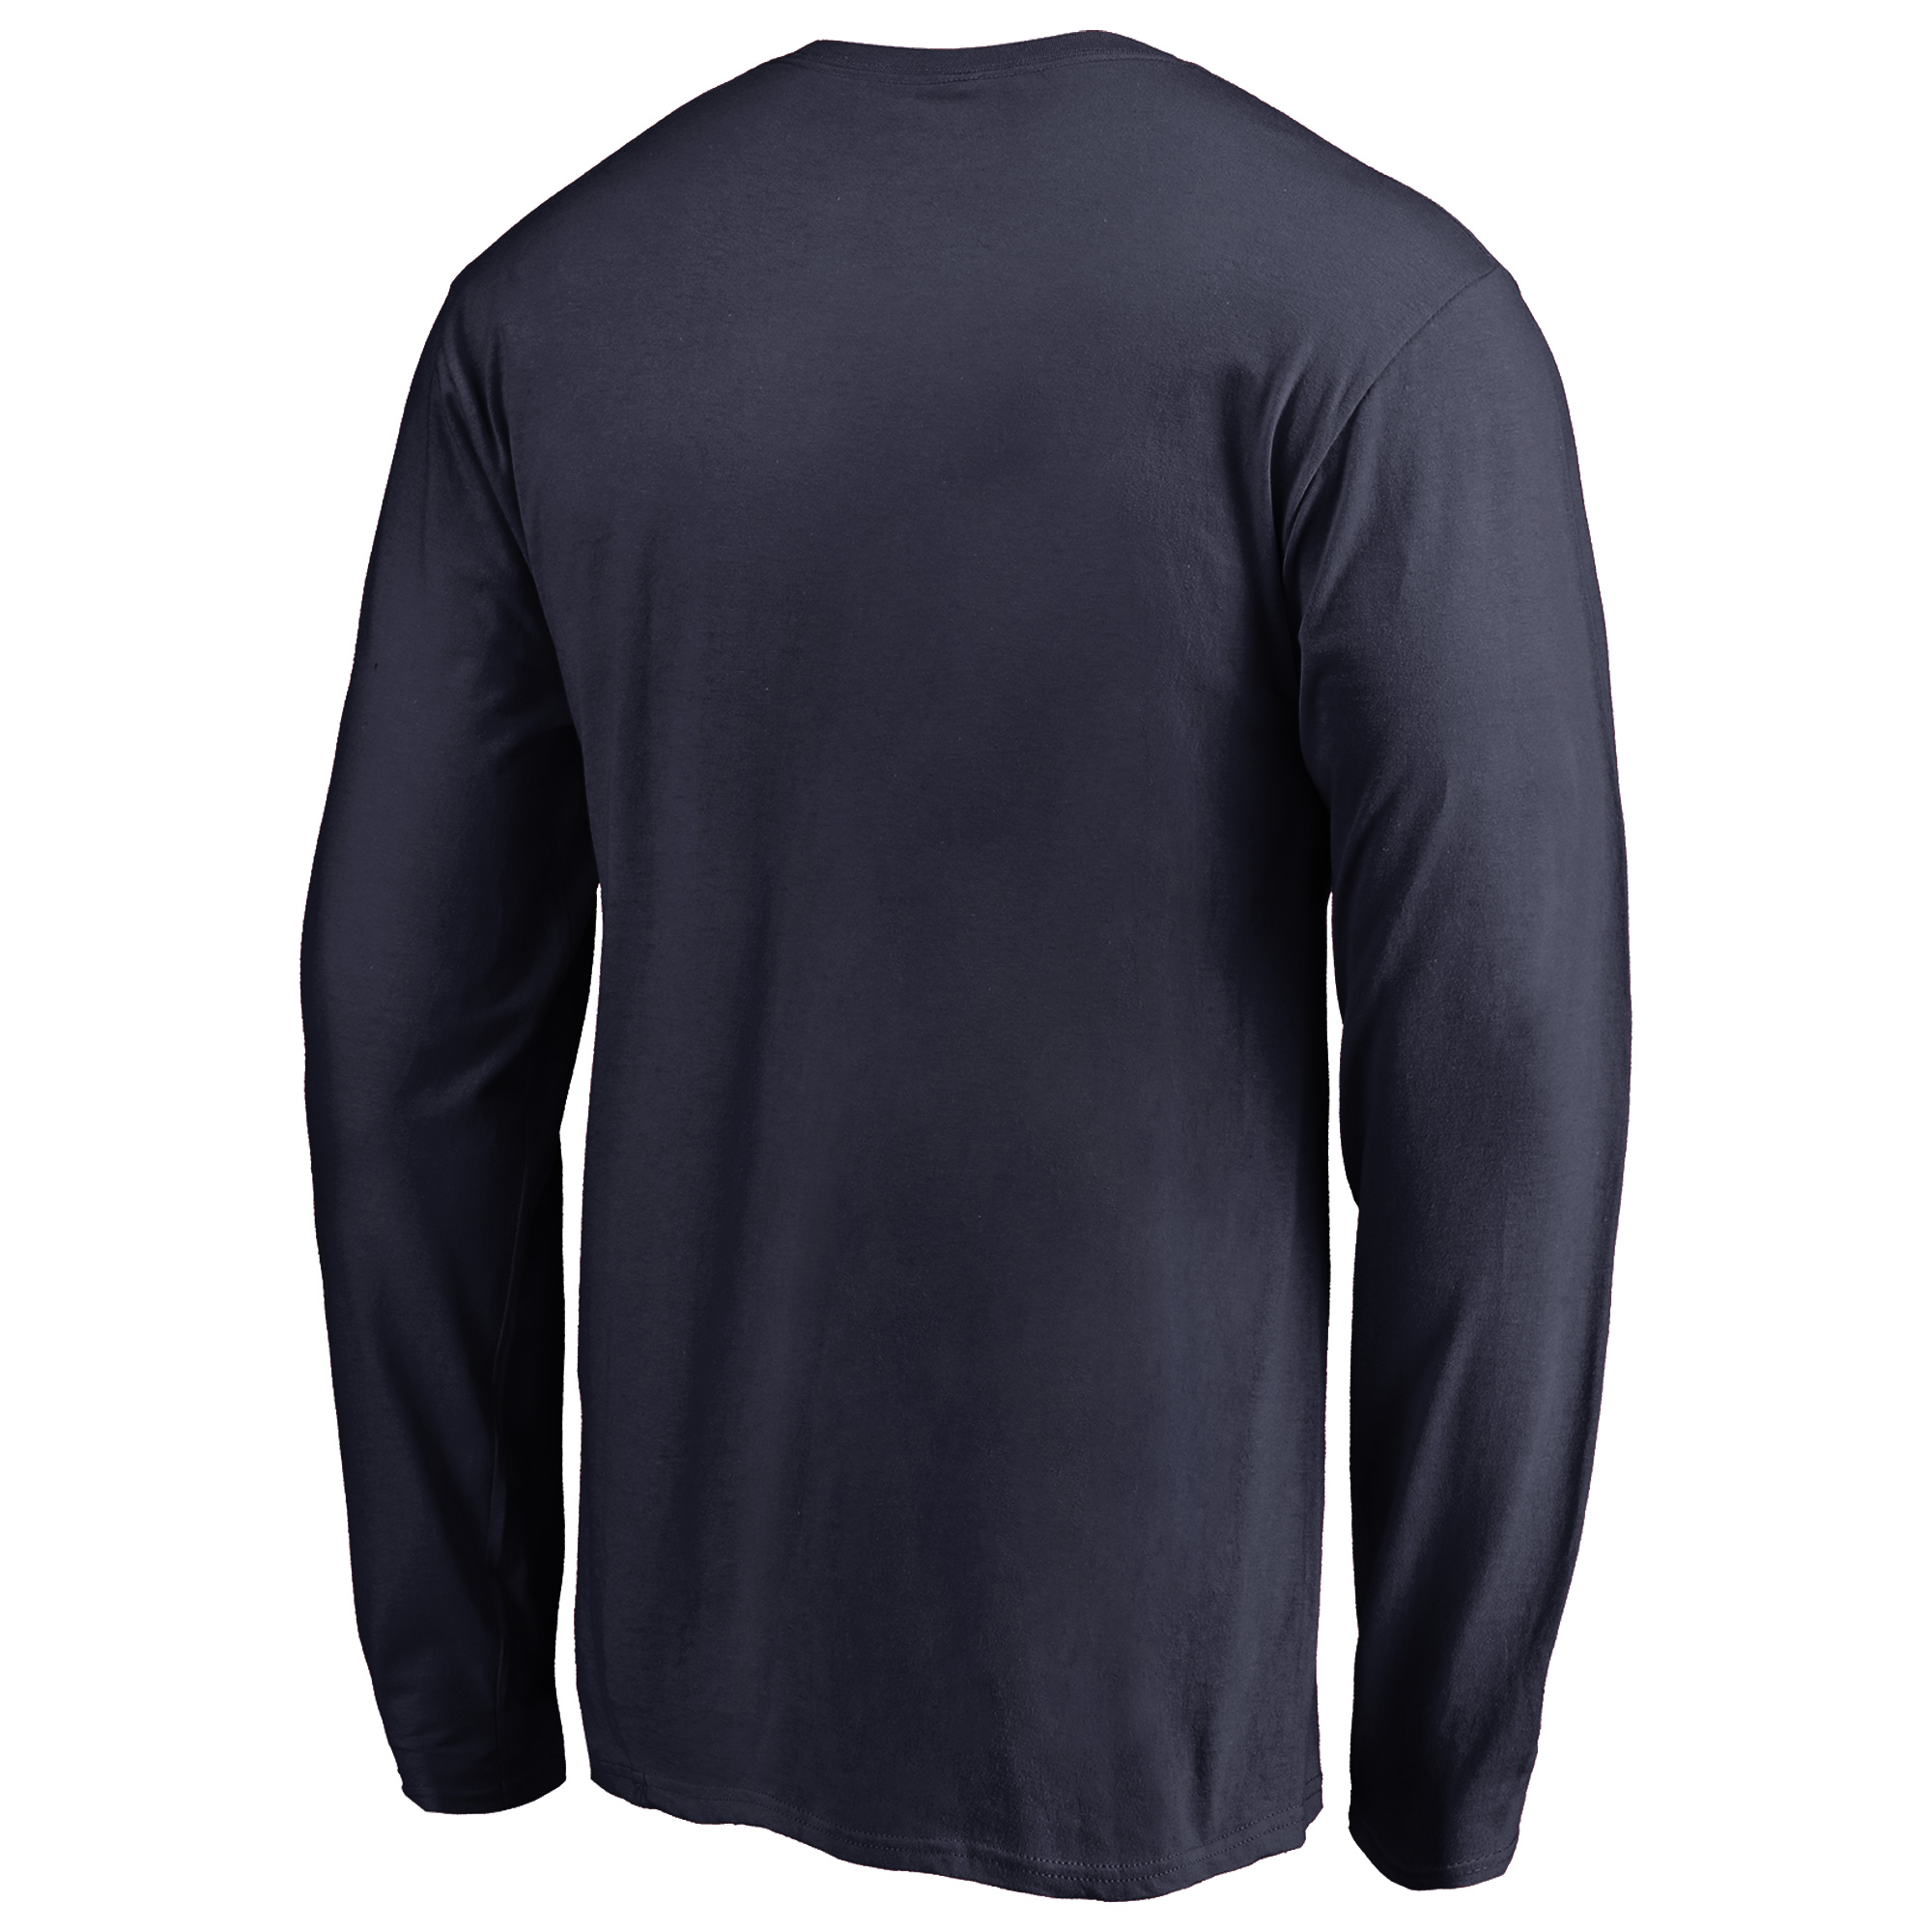 5d2e493f25bac2 Boston Red Sox Fanatics Branded Cooperstown Collection Huntington Long  Sleeve T-Shirt - Navy - Walmart.com